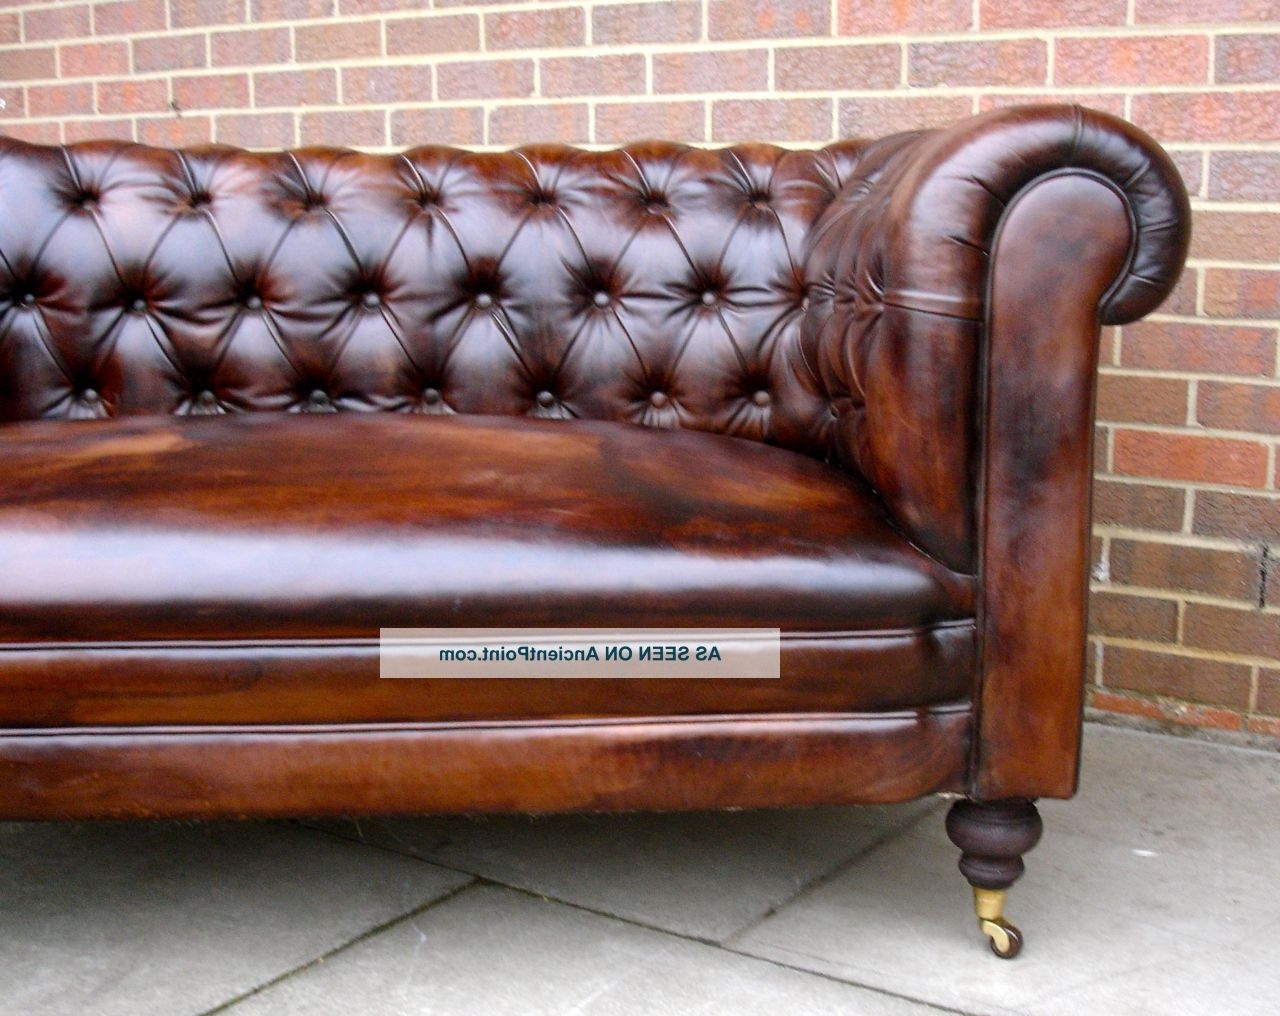 2018 Used Leather Chesterfield Sofa – Home And Textiles Intended For Leather Chesterfield Sofas (View 1 of 15)